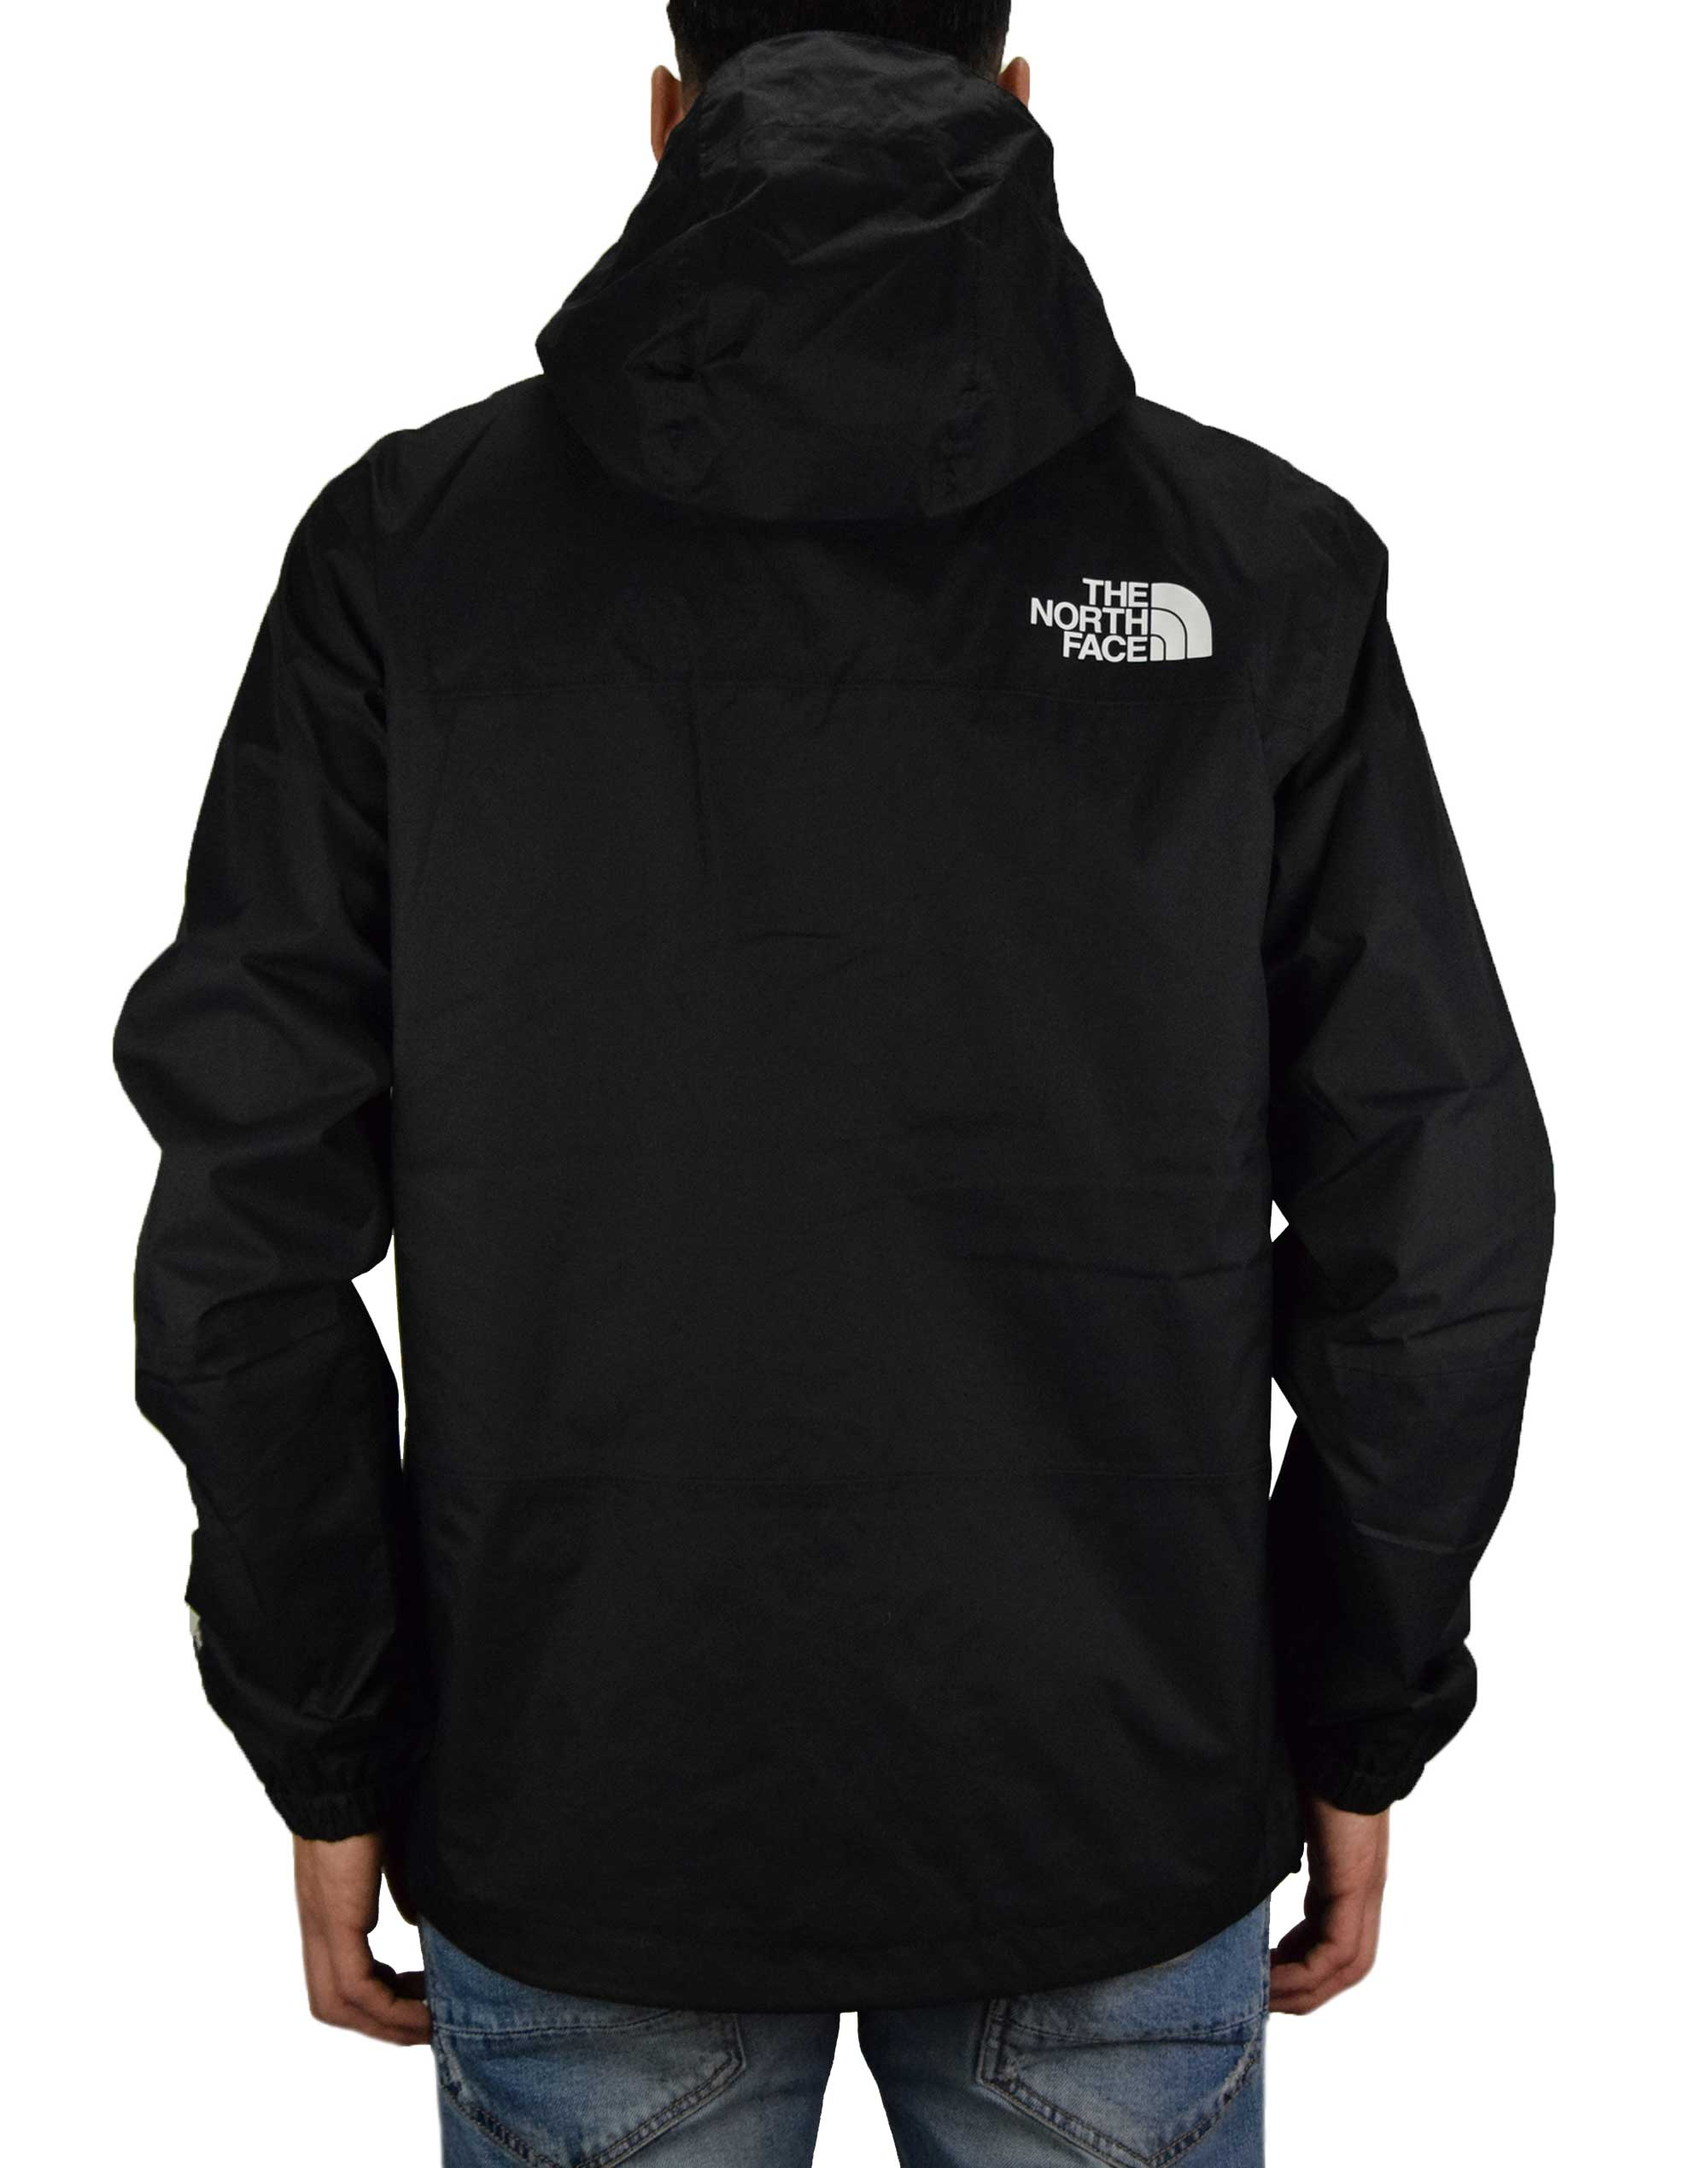 The North Face 1990 Mountain Q Jacket (NF0A2S51NM91) Black/White